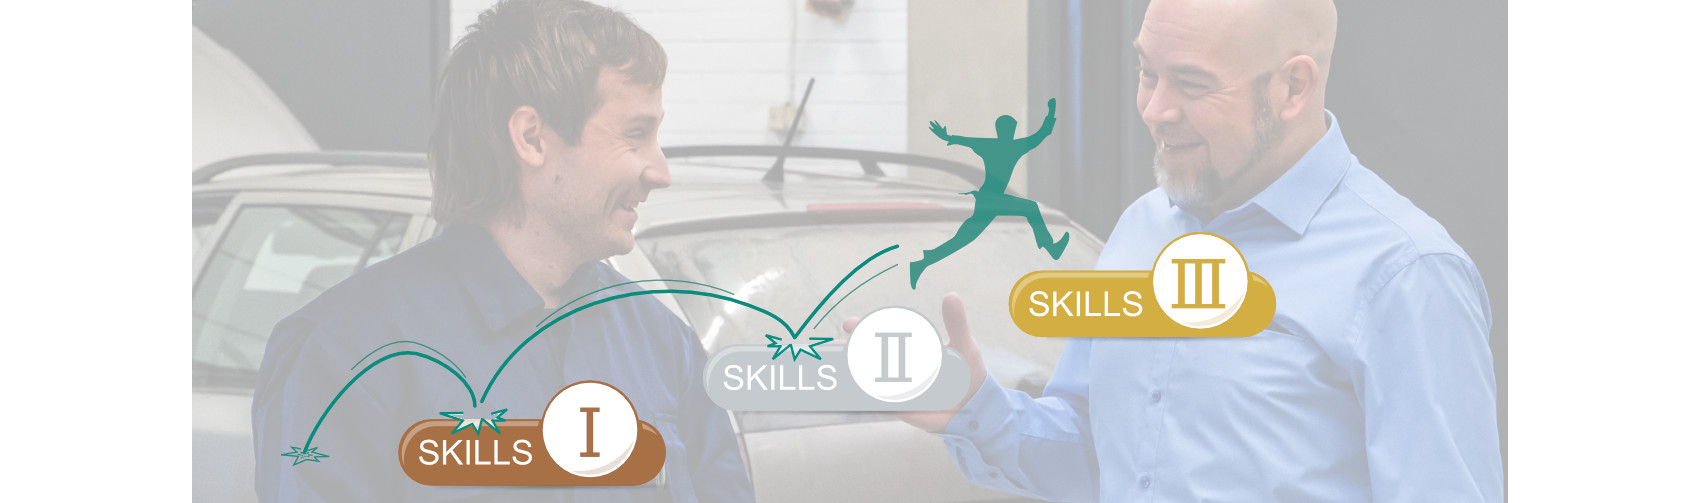 In the background a mechanic or auto technician and his manager standing in front of a car in the workshop. The main focus in the image on a drawn man jumping between the prodiags skills concepts product icons.